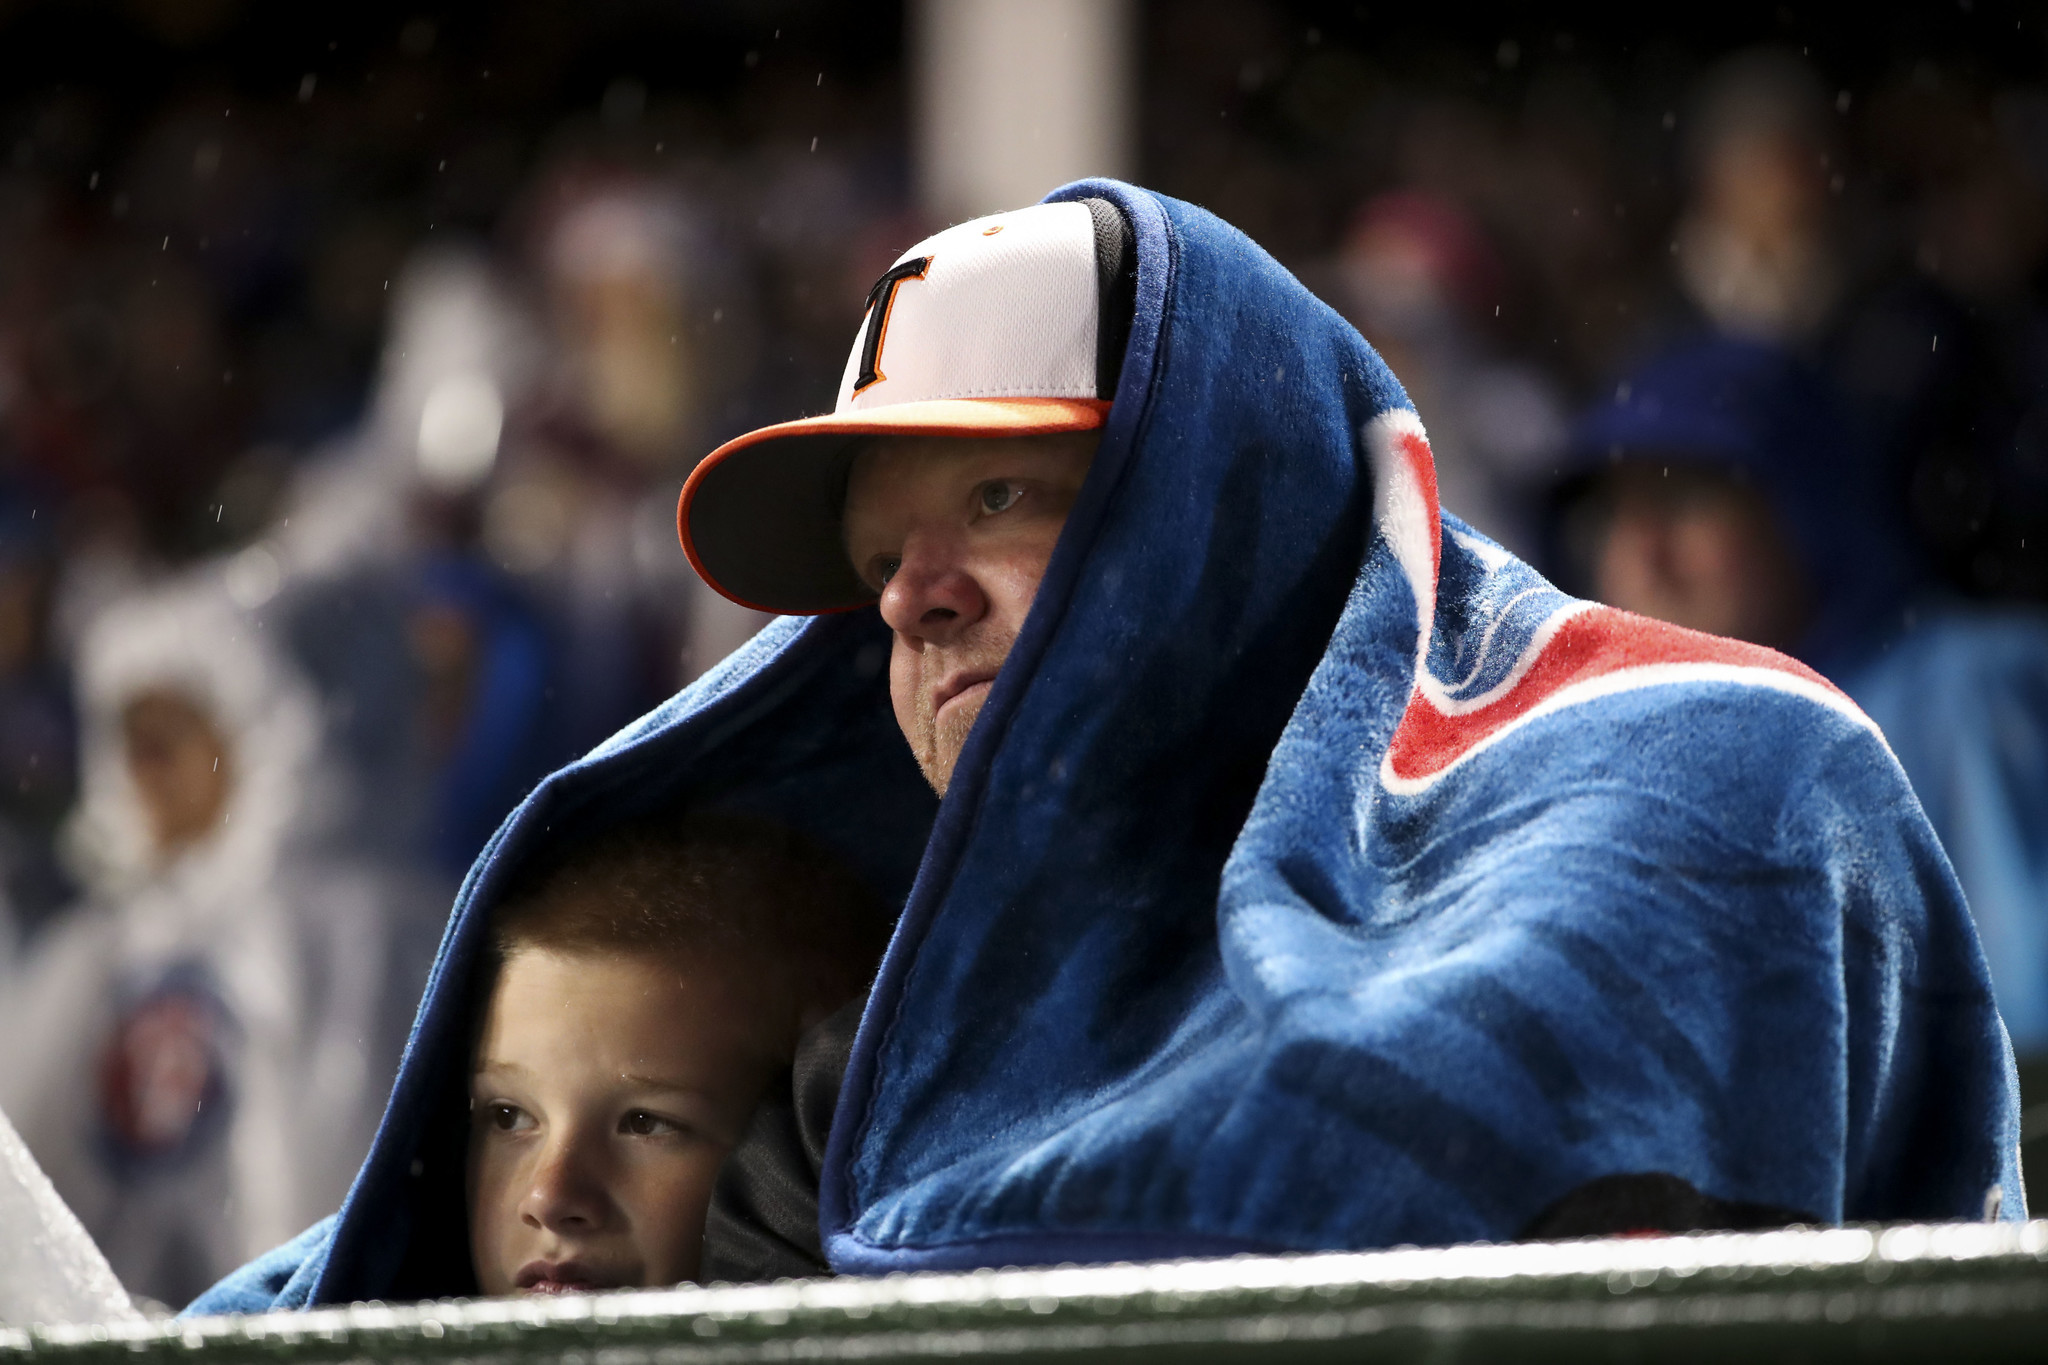 ed0e96cf82f64 Cold nights at the ballpark for the Cubs and White Sox — and their fans -  Chicago Tribune